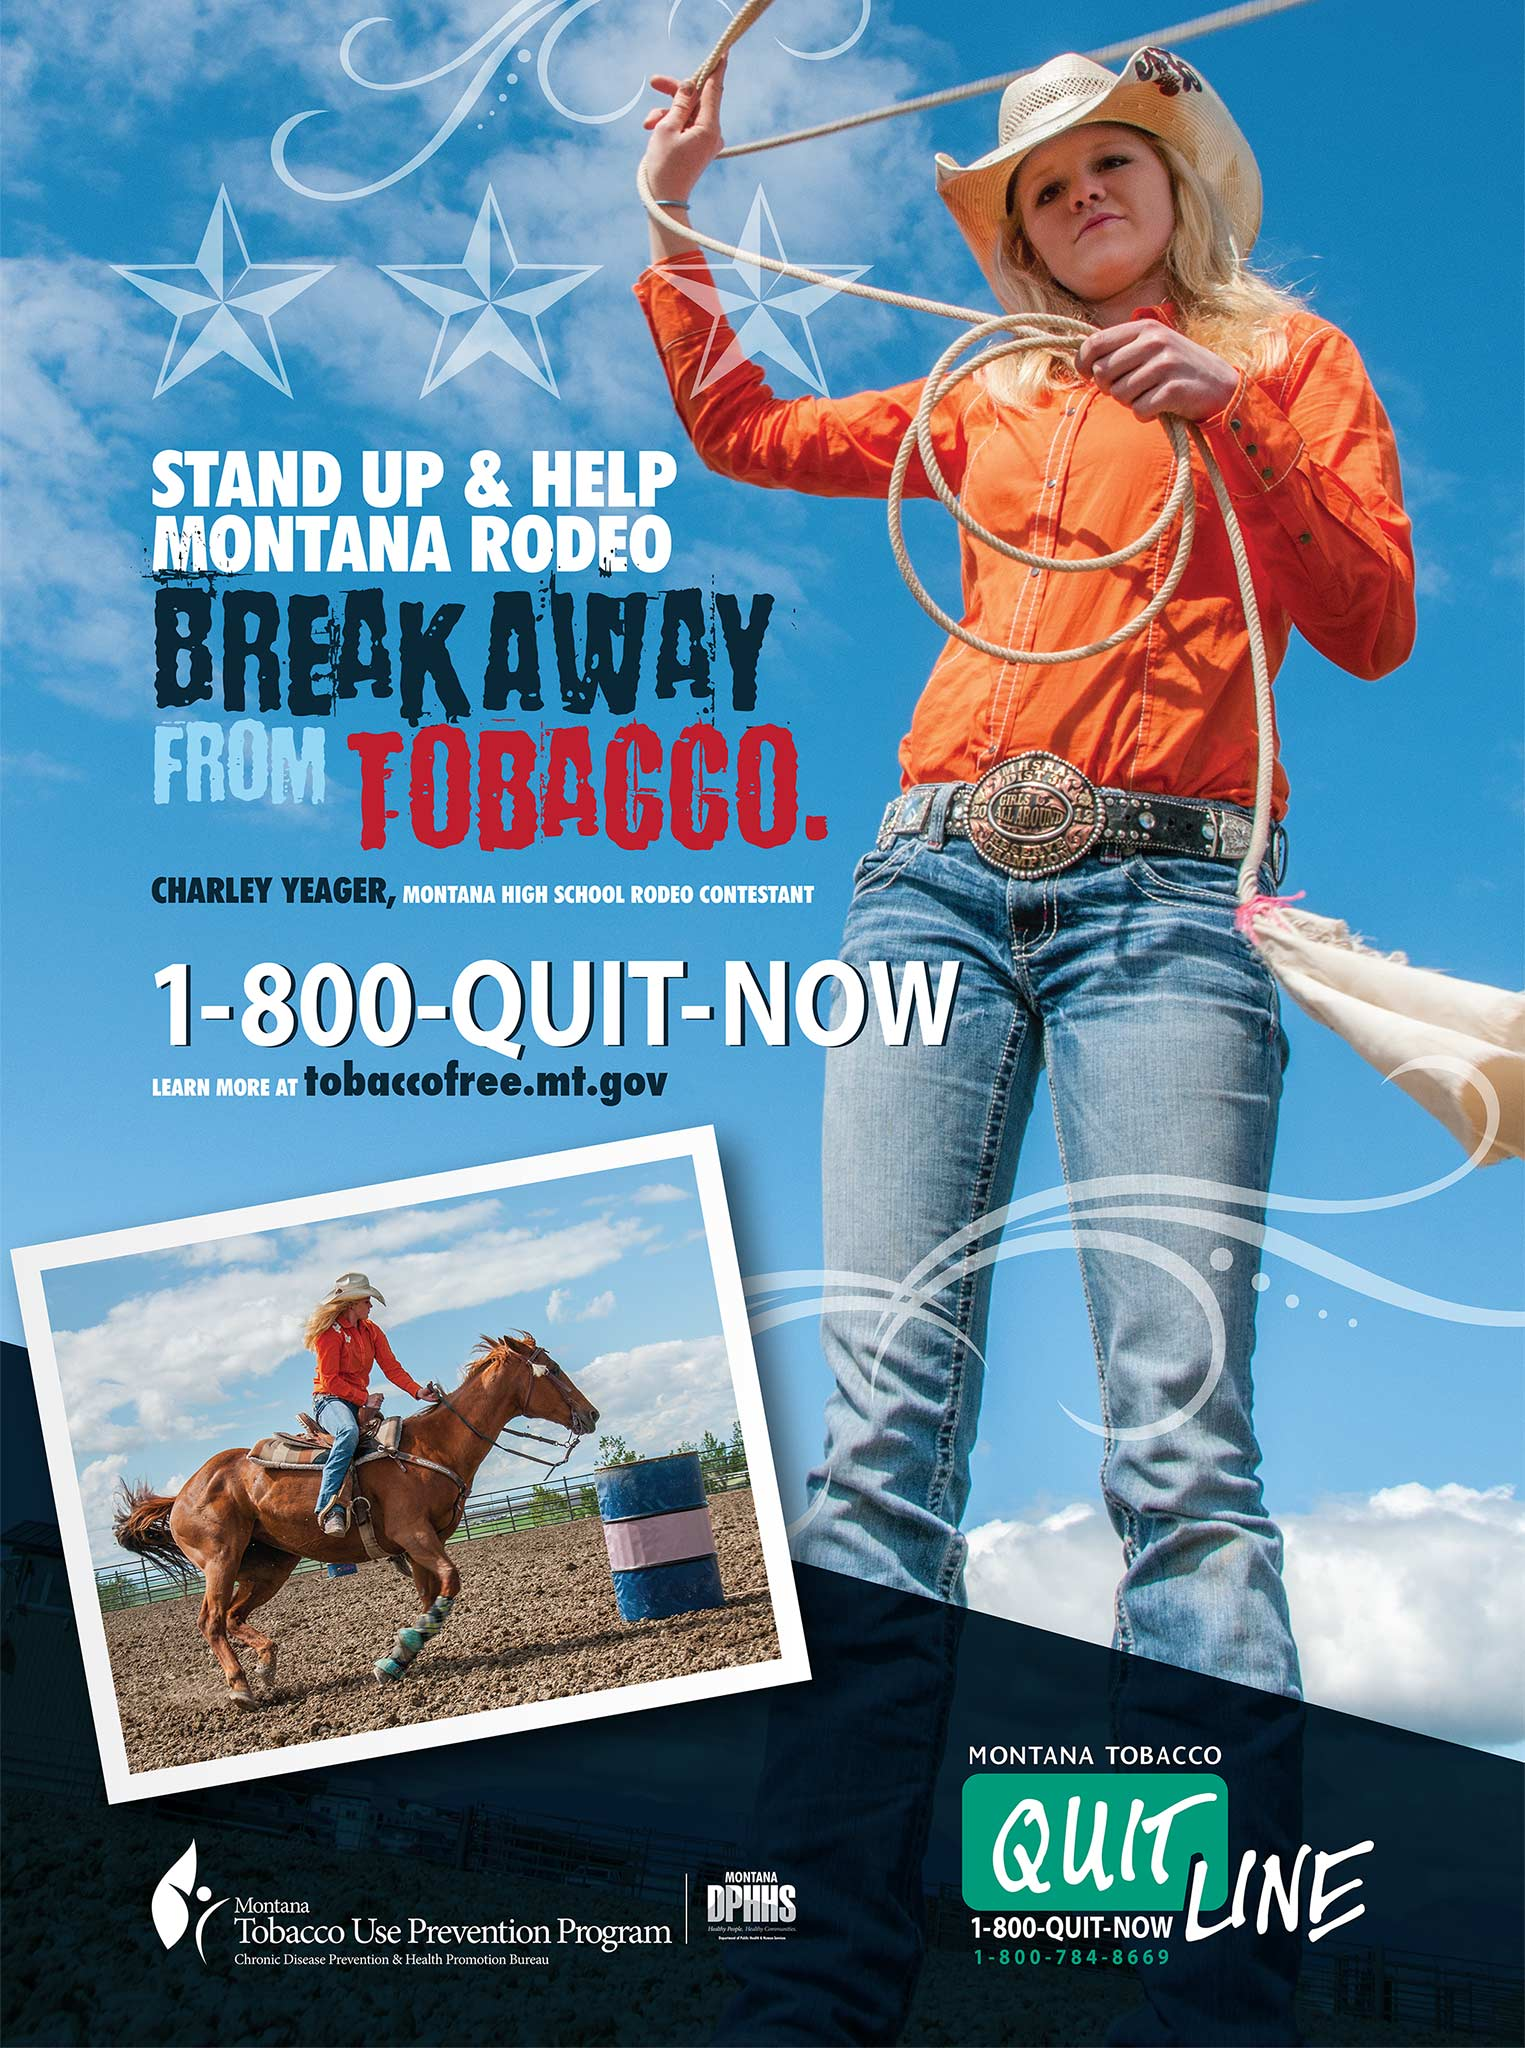 Montana Tobacco Use Prevention Program: Rodeo Poster